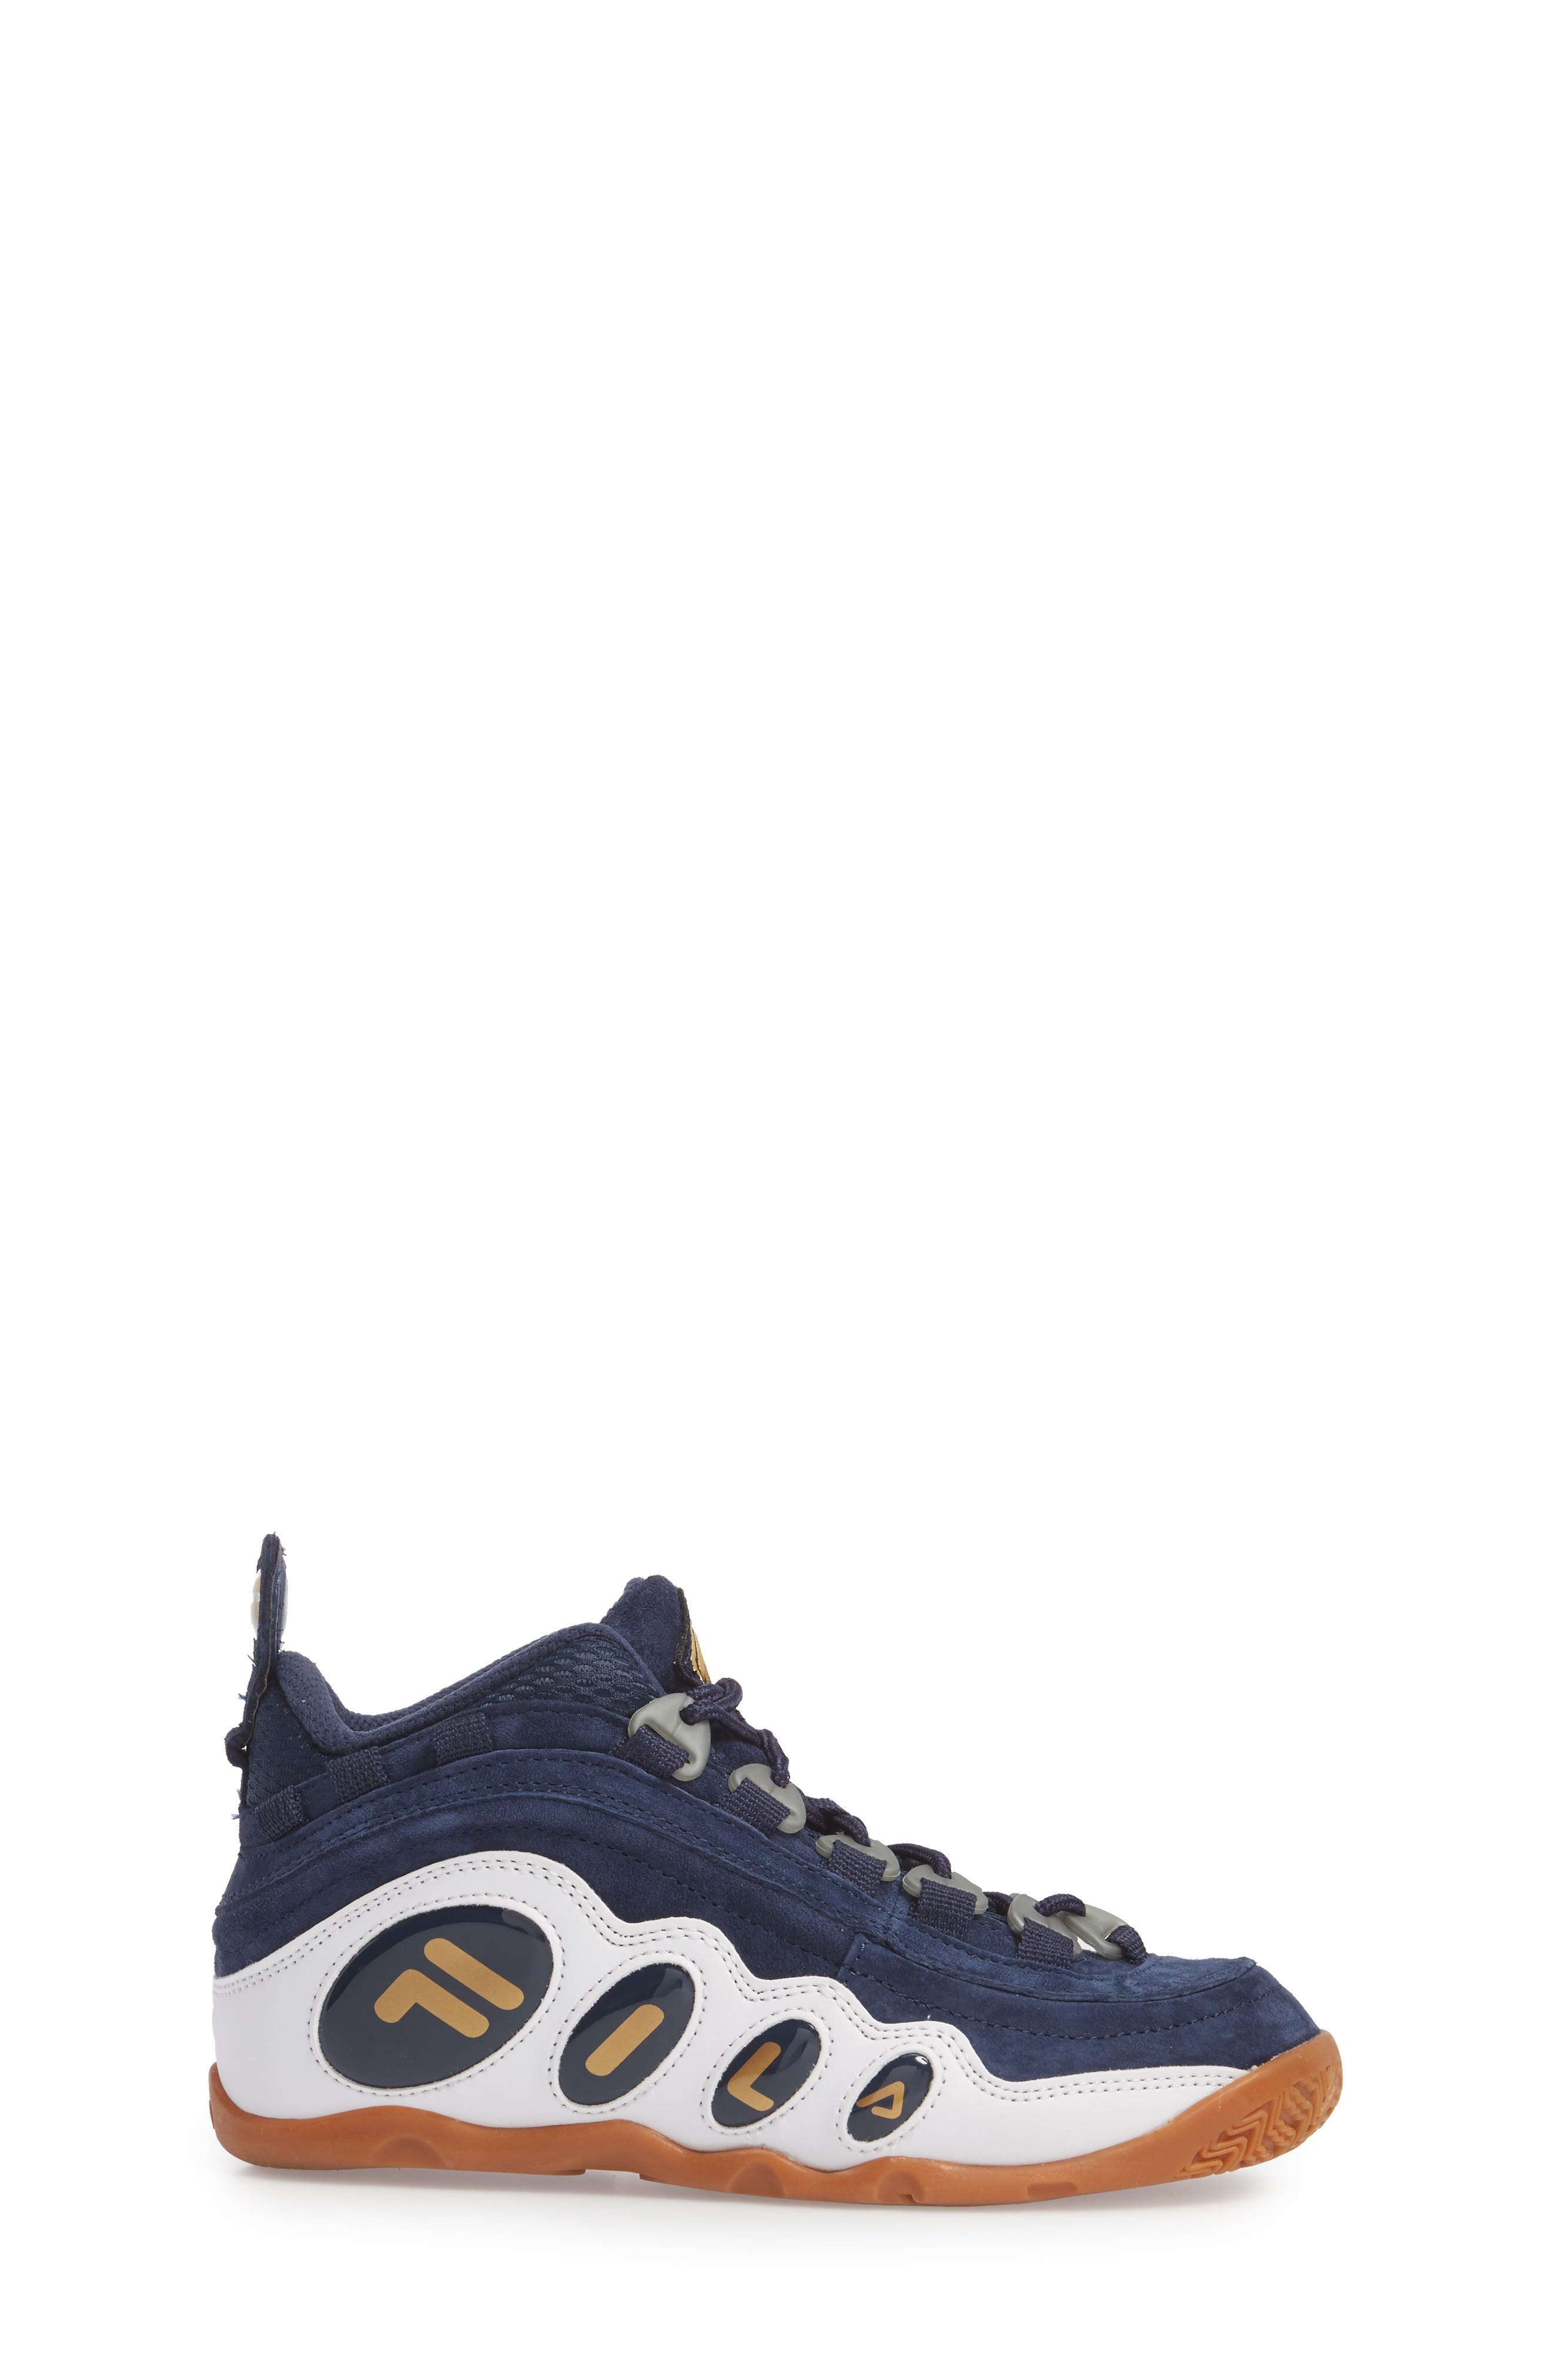 FILA, Bubbles Mid Top Sneaker Boot, Alternate thumbnail 3, color, NAVY/ GOLD/ WHITE